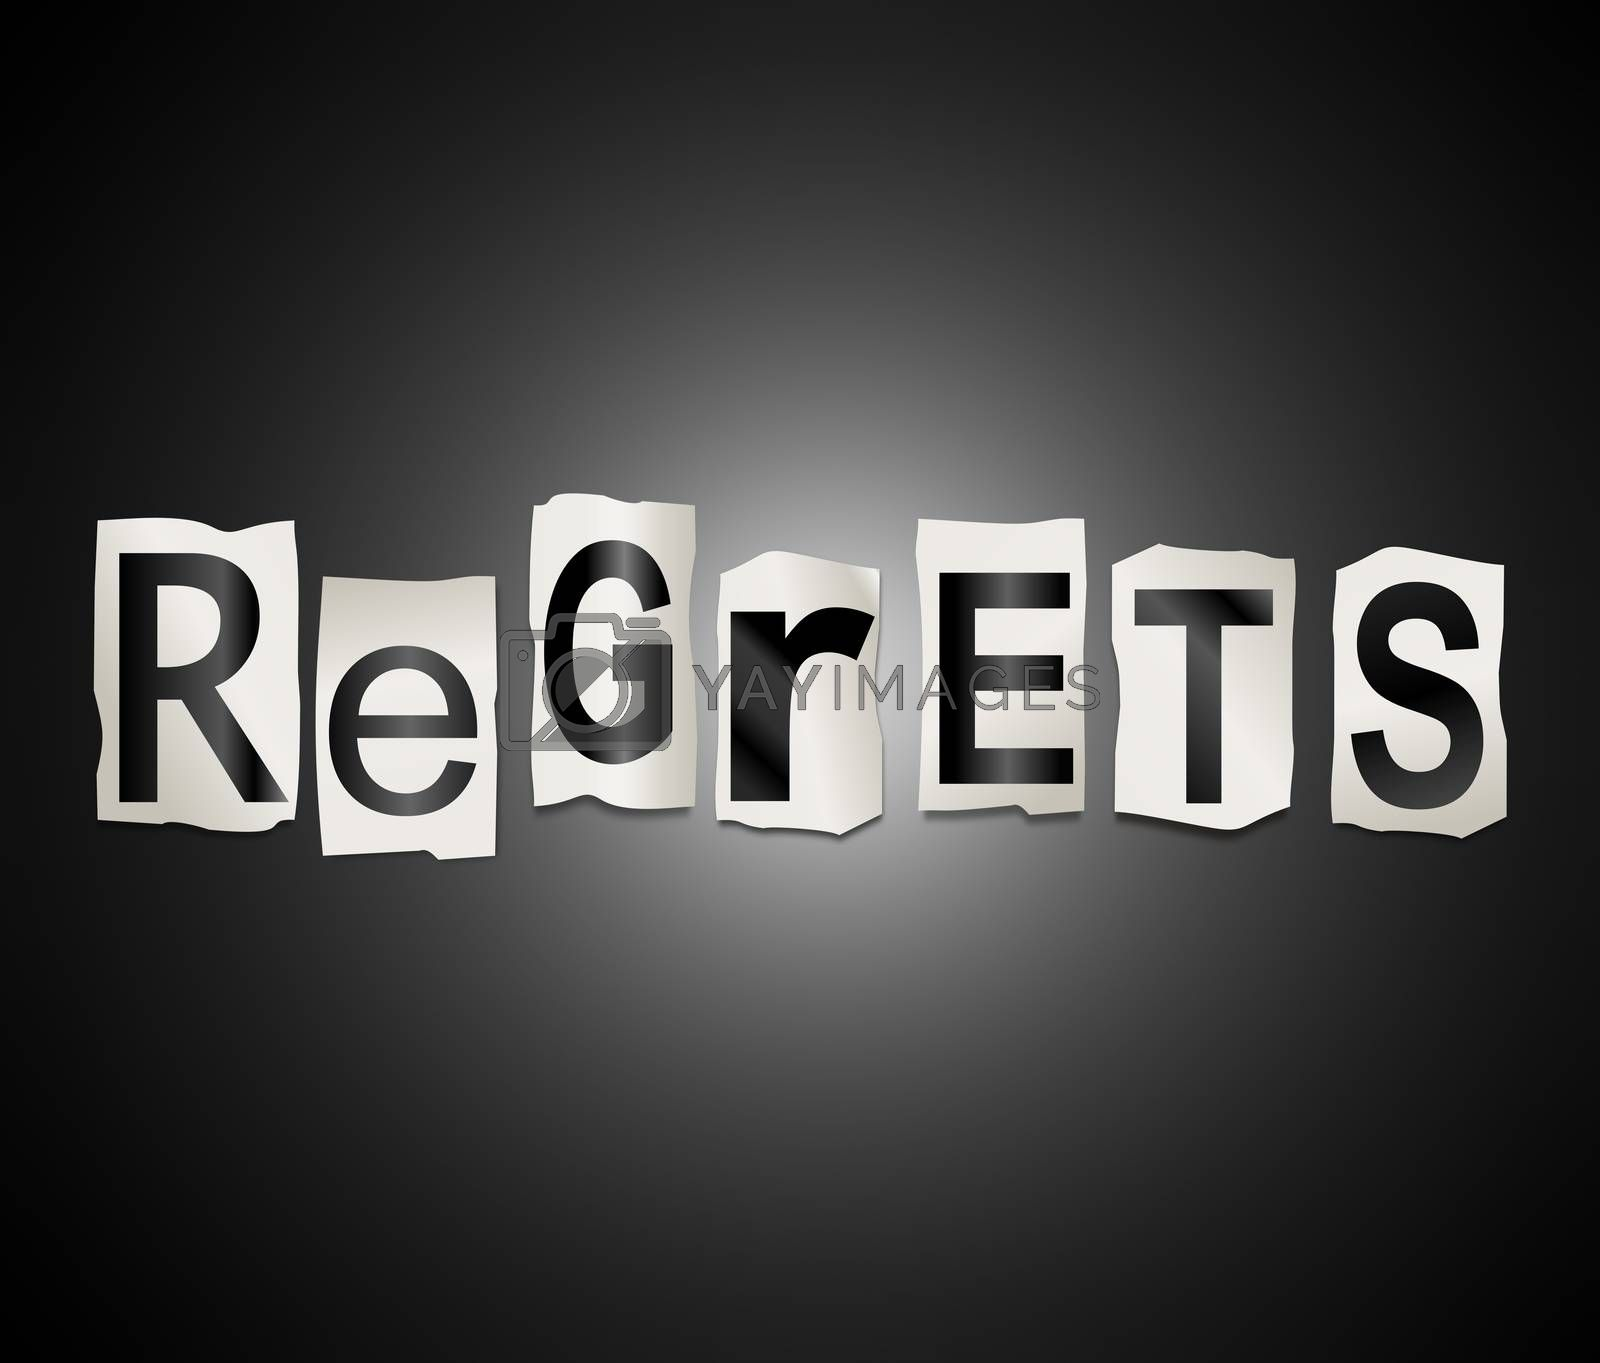 Illustration depicting a set of cut out printed letters arranged to form the word regrets.